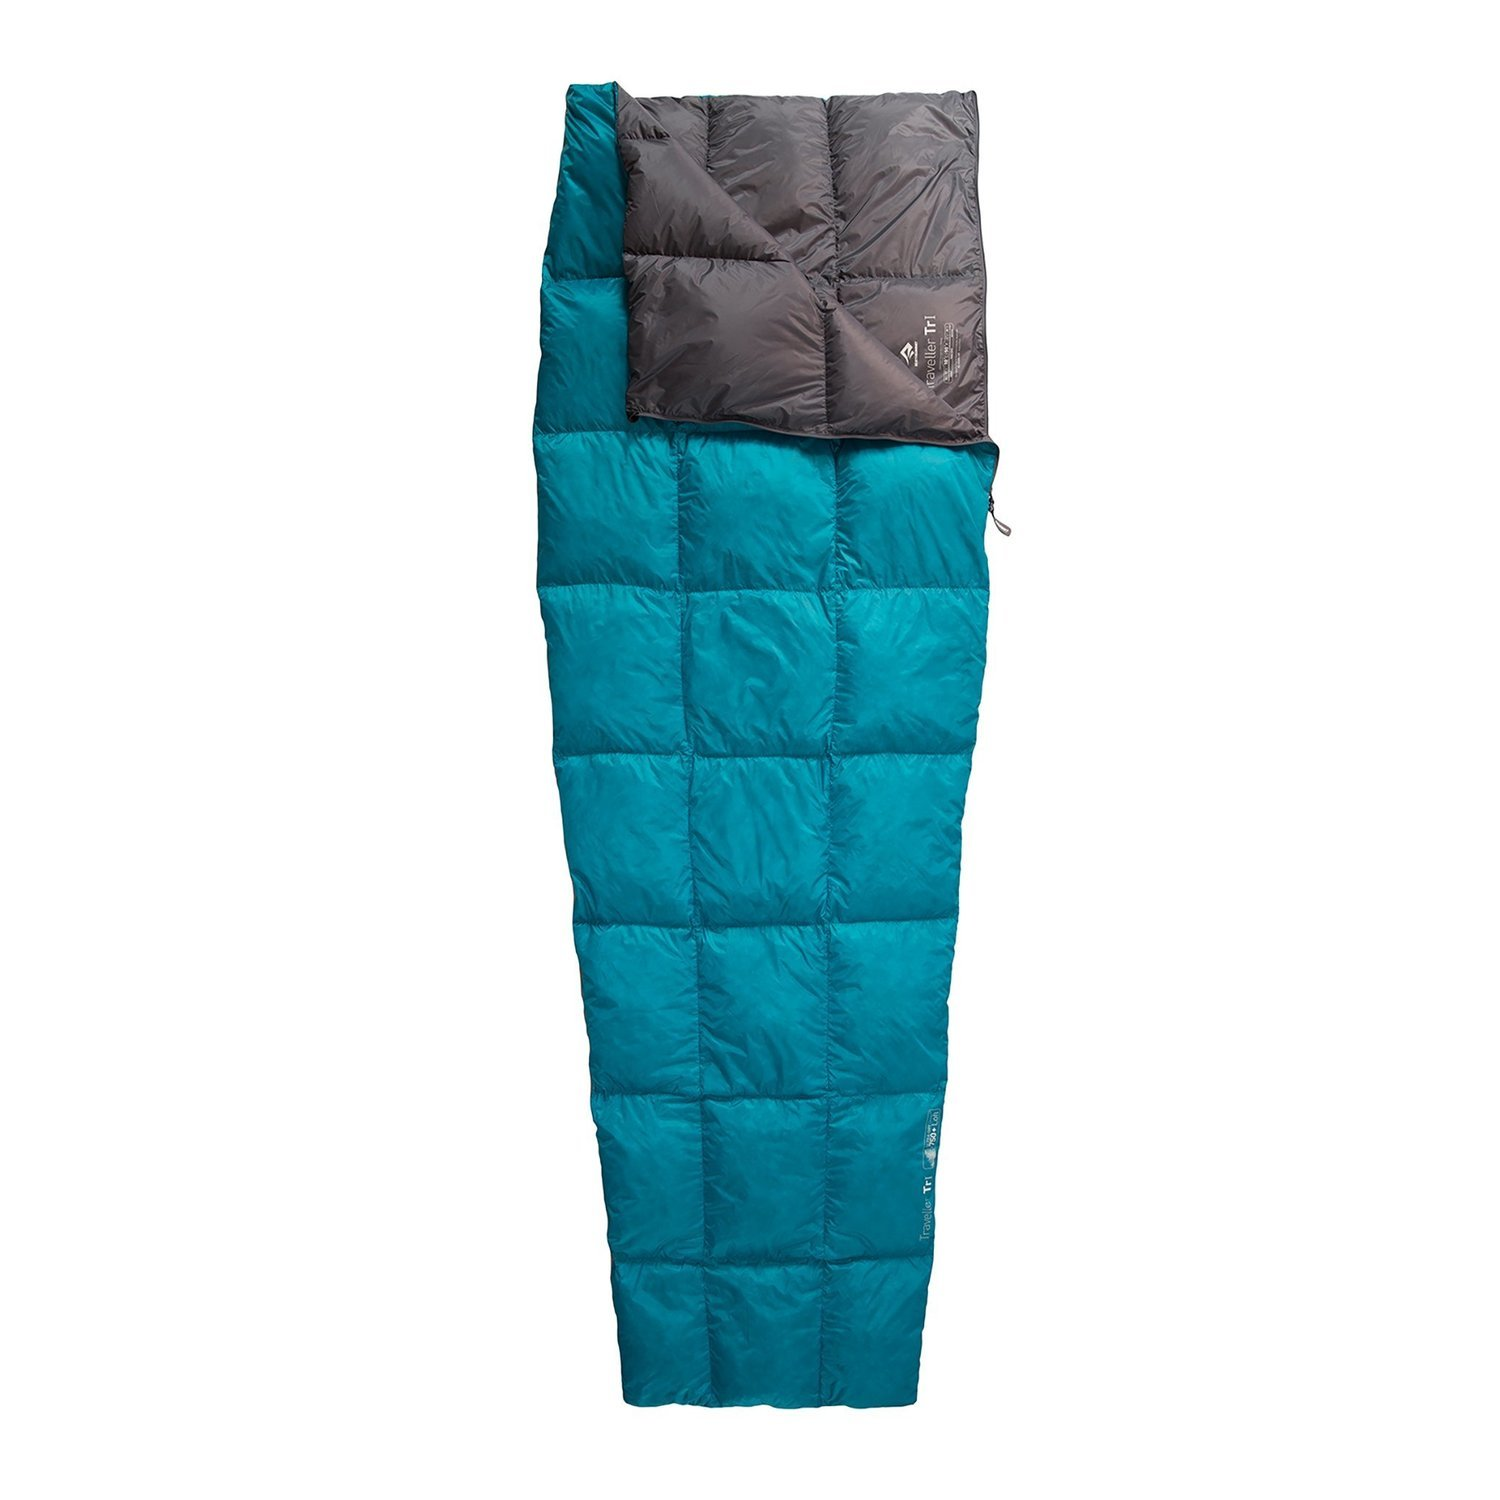 Sea to Summit Traveller Down Sleeping Bag and Blanket